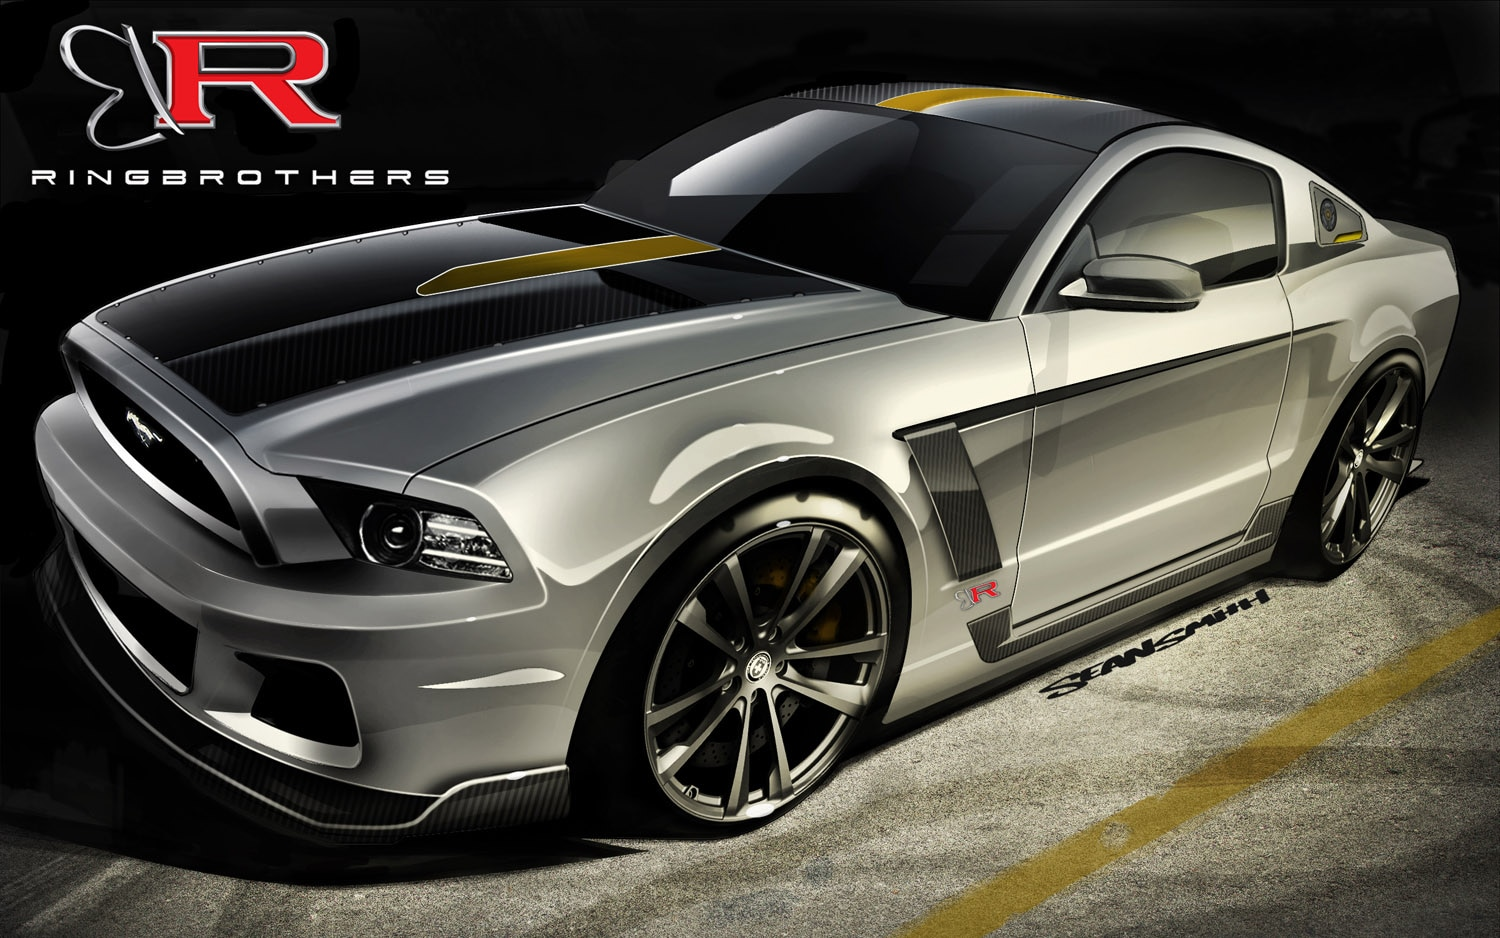 2013 Ford Mustang GT Ringbrothers SEMA1